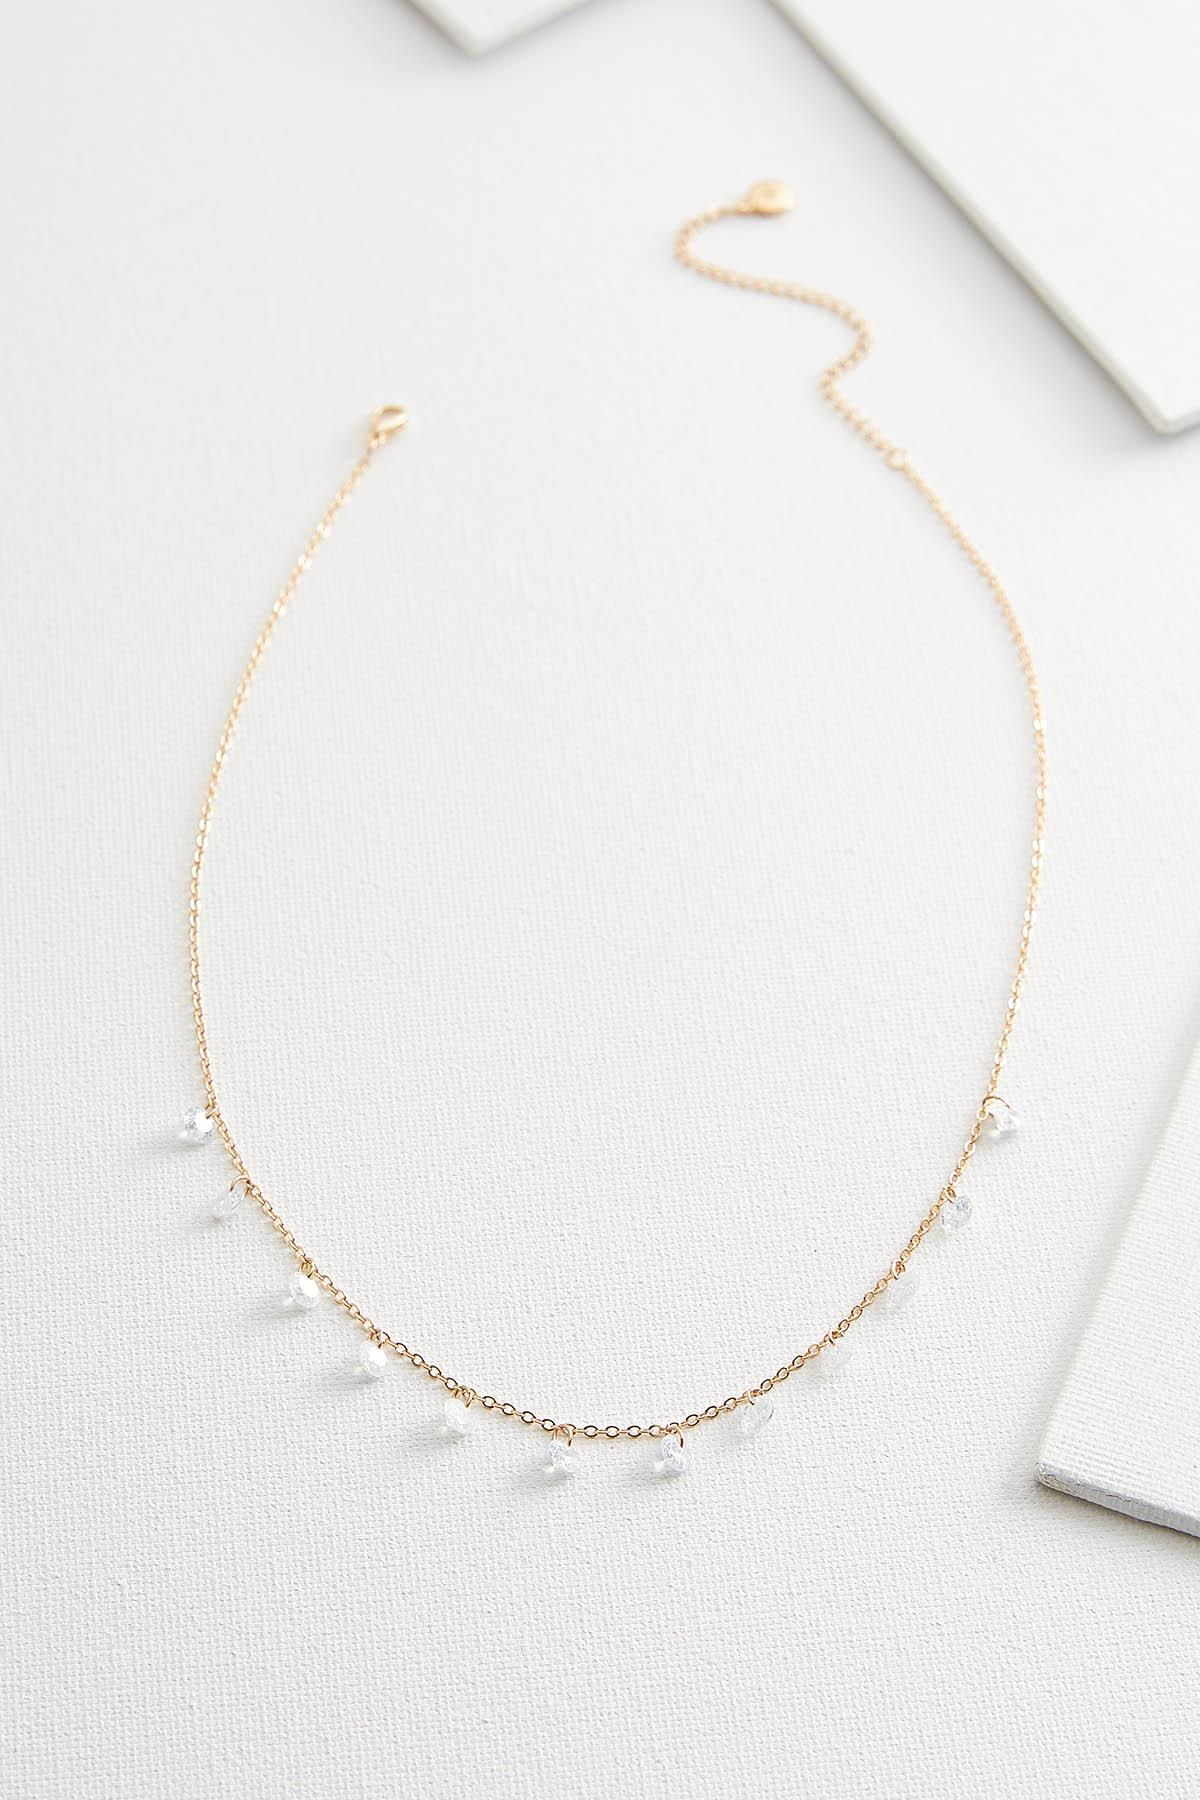 Dainty Dangling Stone Necklace